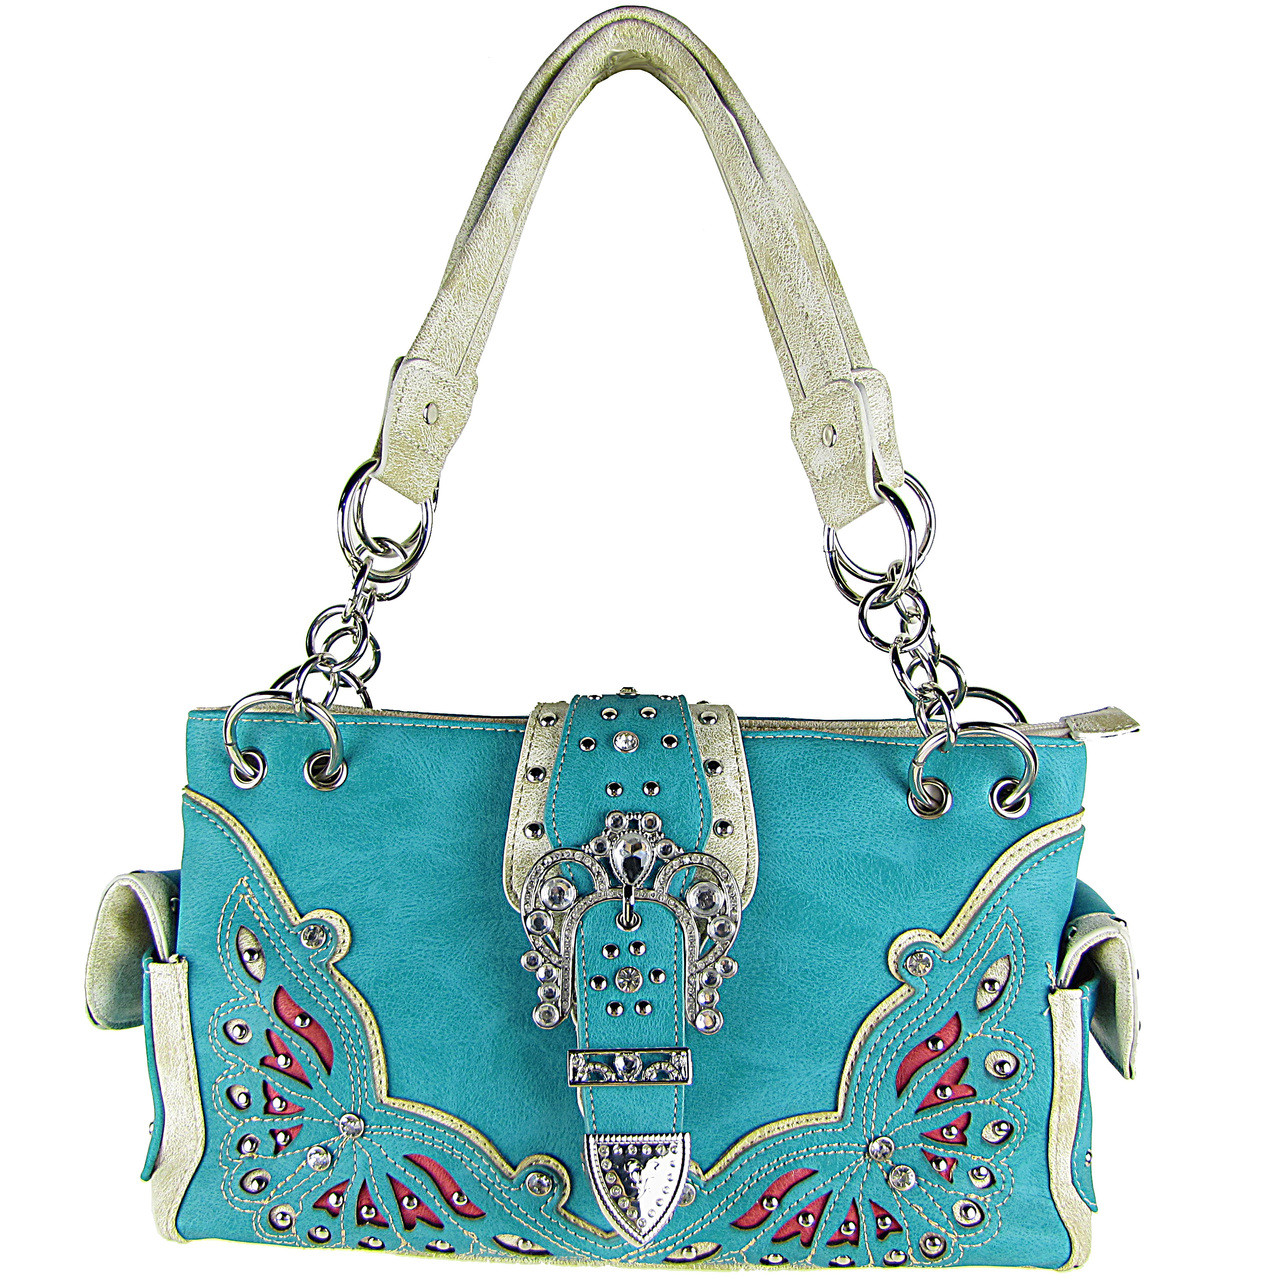 TURQUOISE RHINESTONE BUCKLE LOOK SHOULDER HANDBAG HB1-39W70TRQ